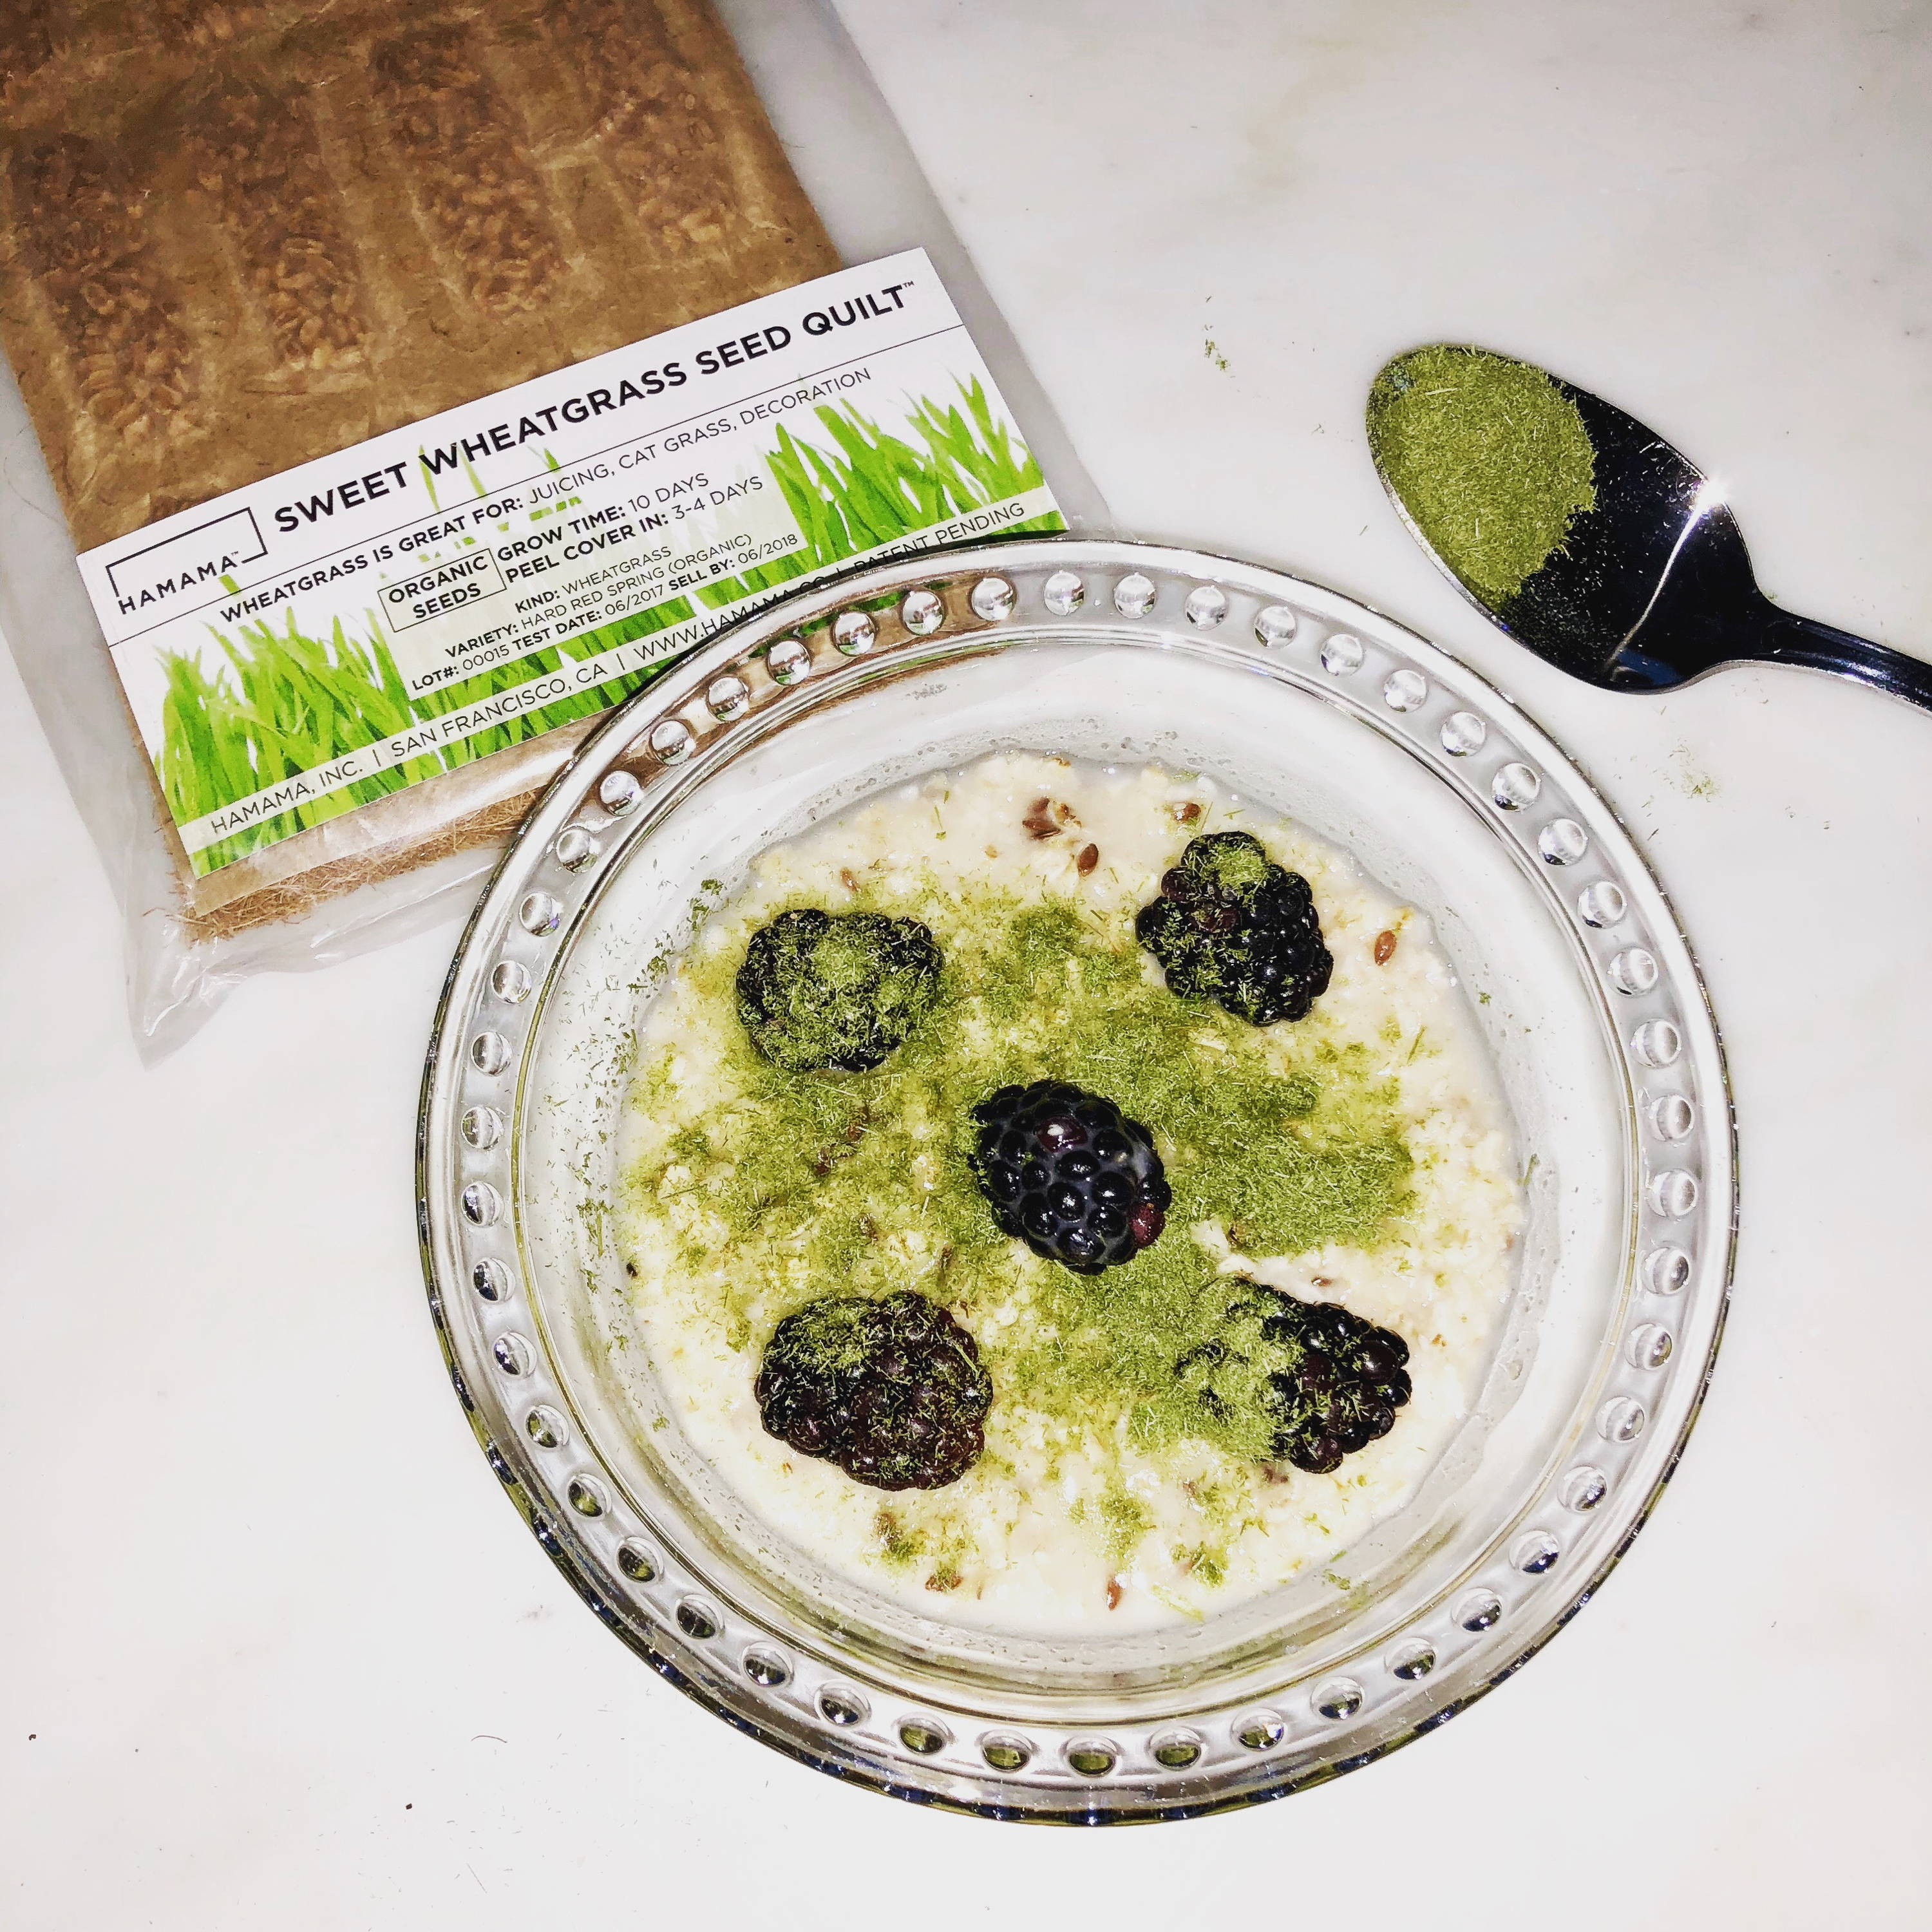 Wheatgrass powder mixed into overnight oats with blackberries.  The wheatgrass Seed Quilt is in the background.